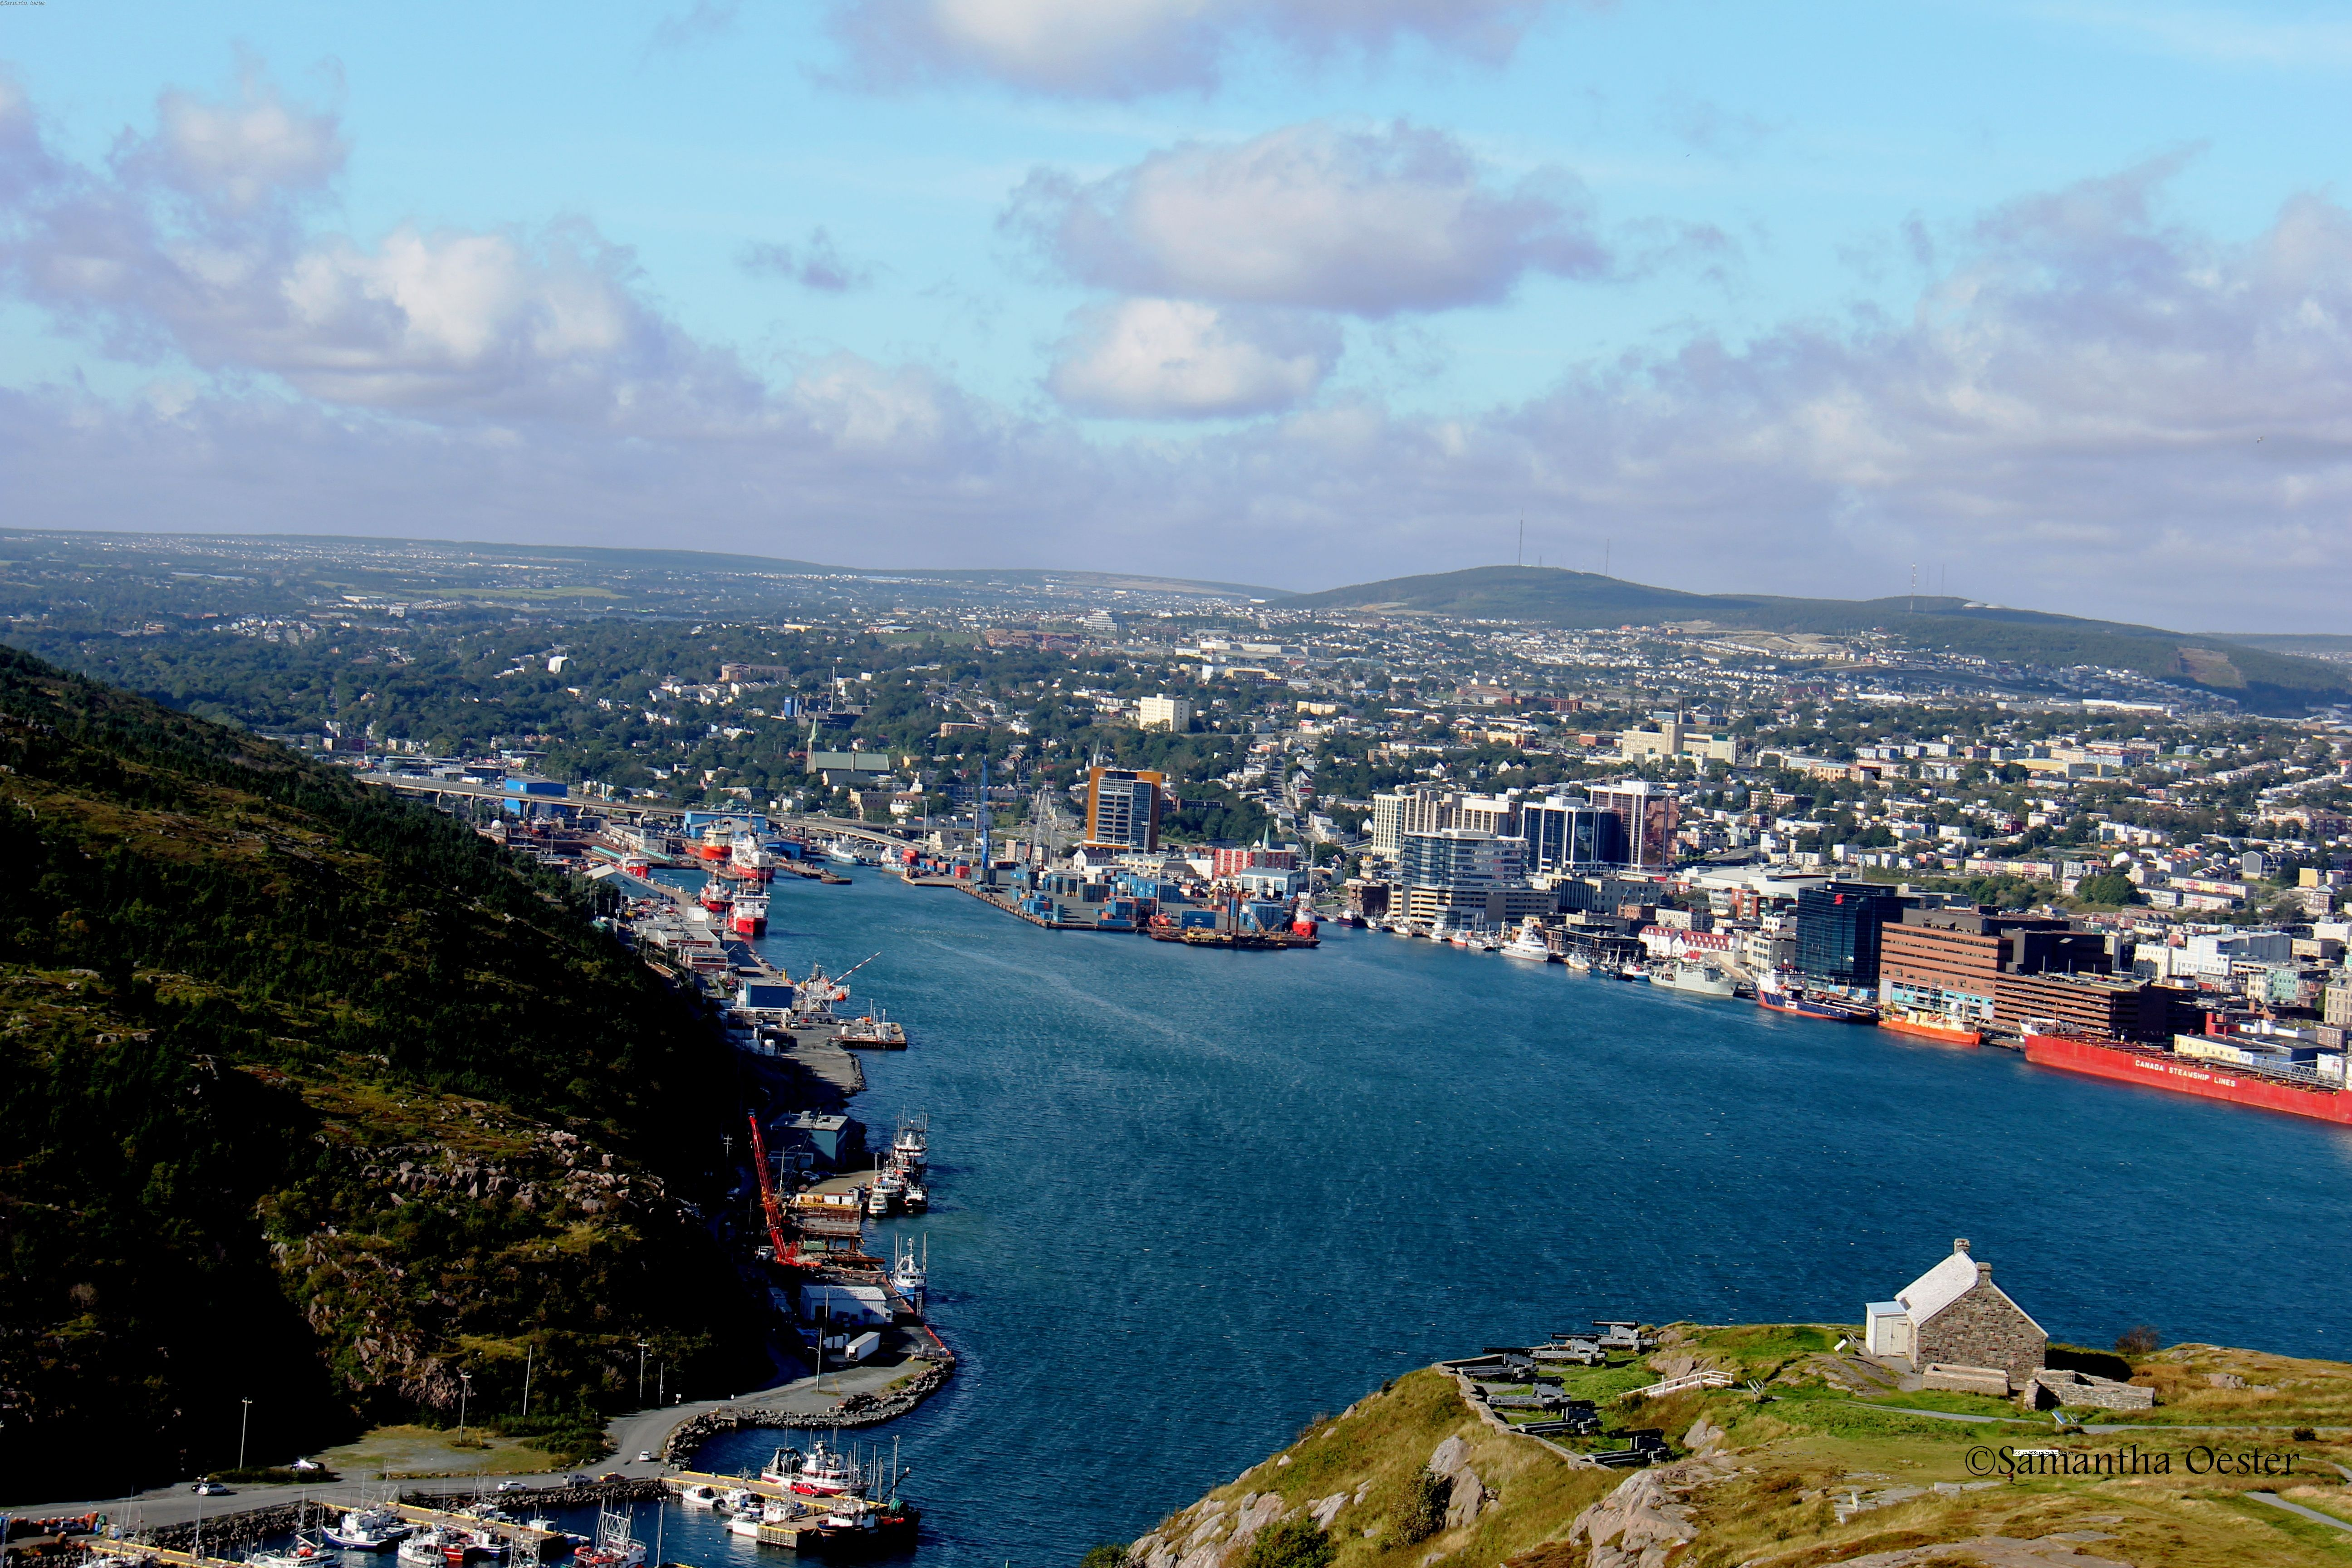 Photo View of St. John's, the capital of Newfoundland and Labrador, Canada